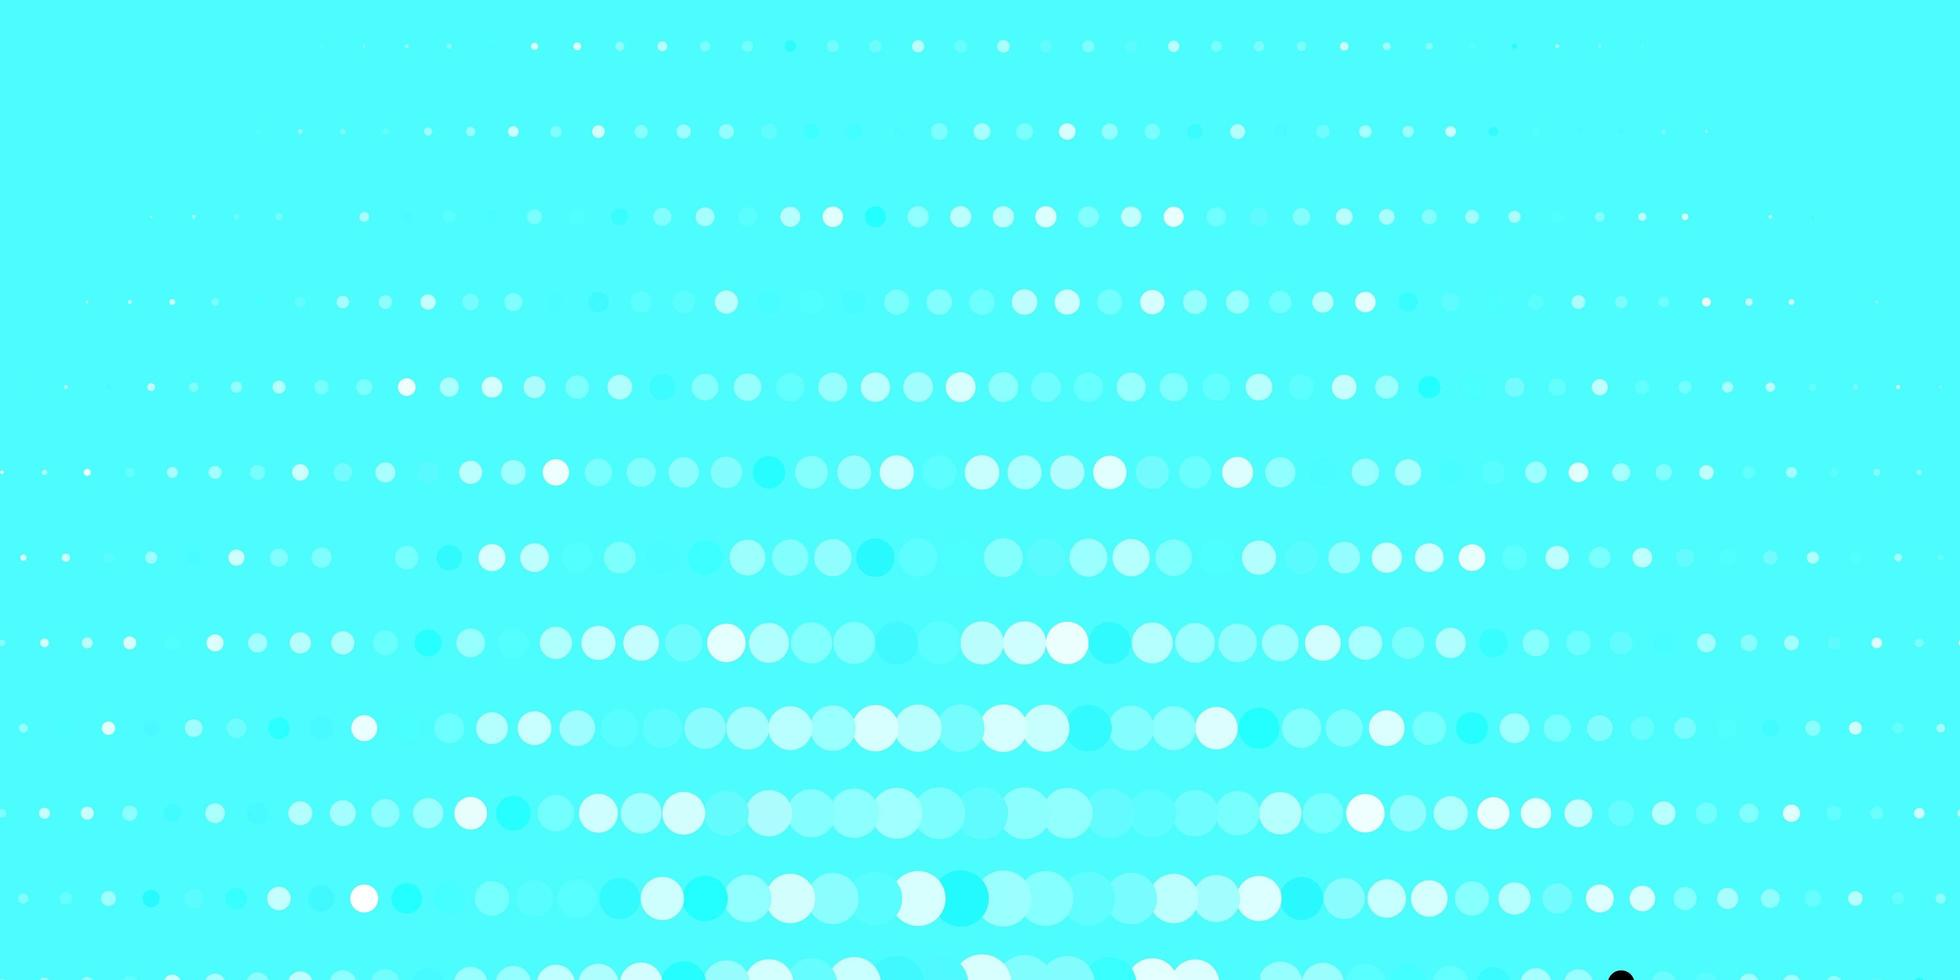 Blue pattern with spheres. vector